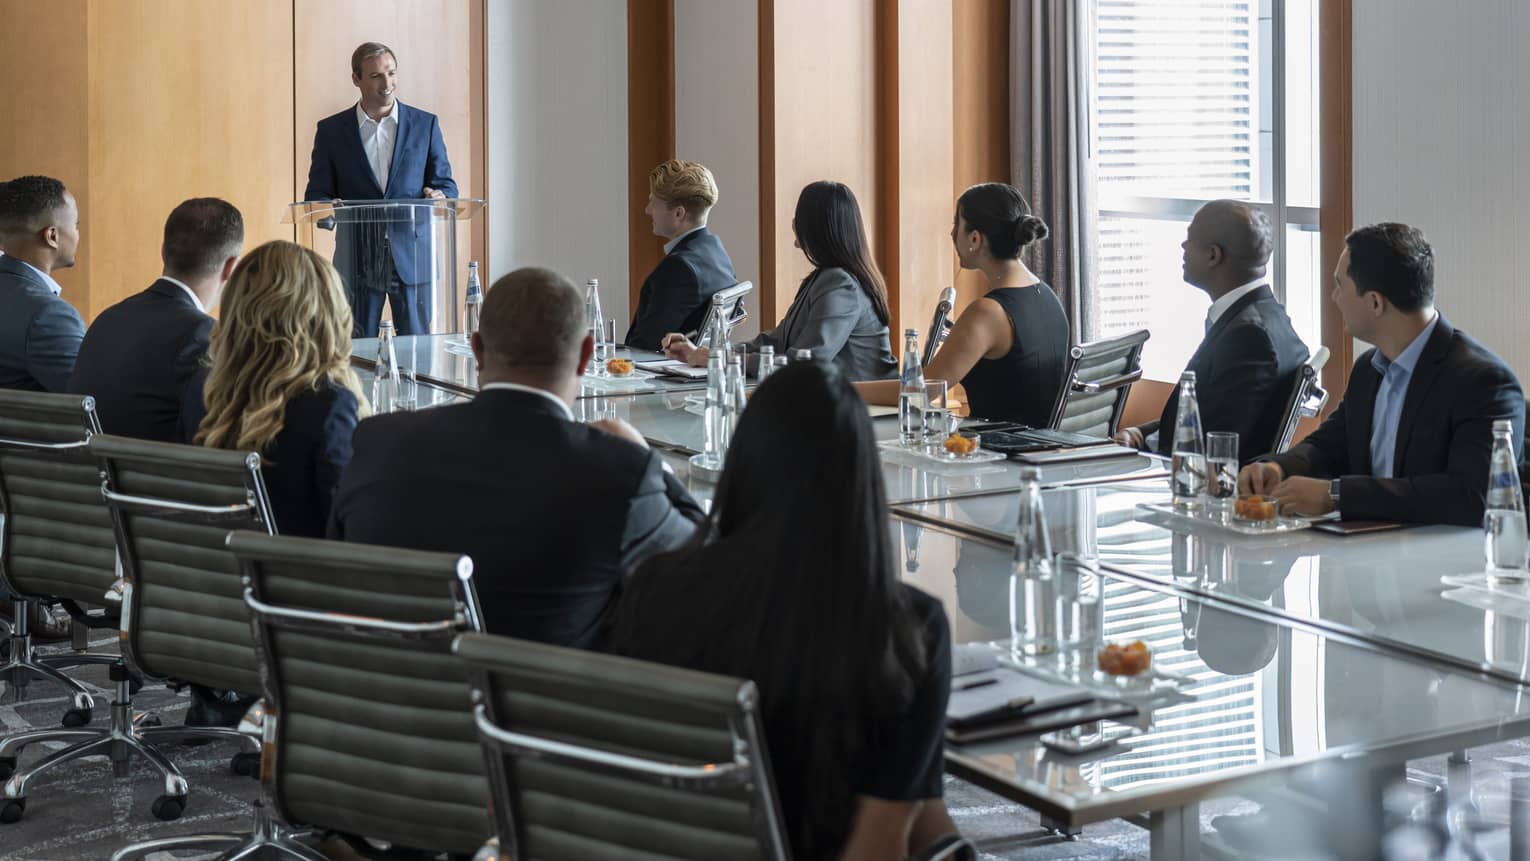 A business meeting in the Bal Harbour Meeting Room